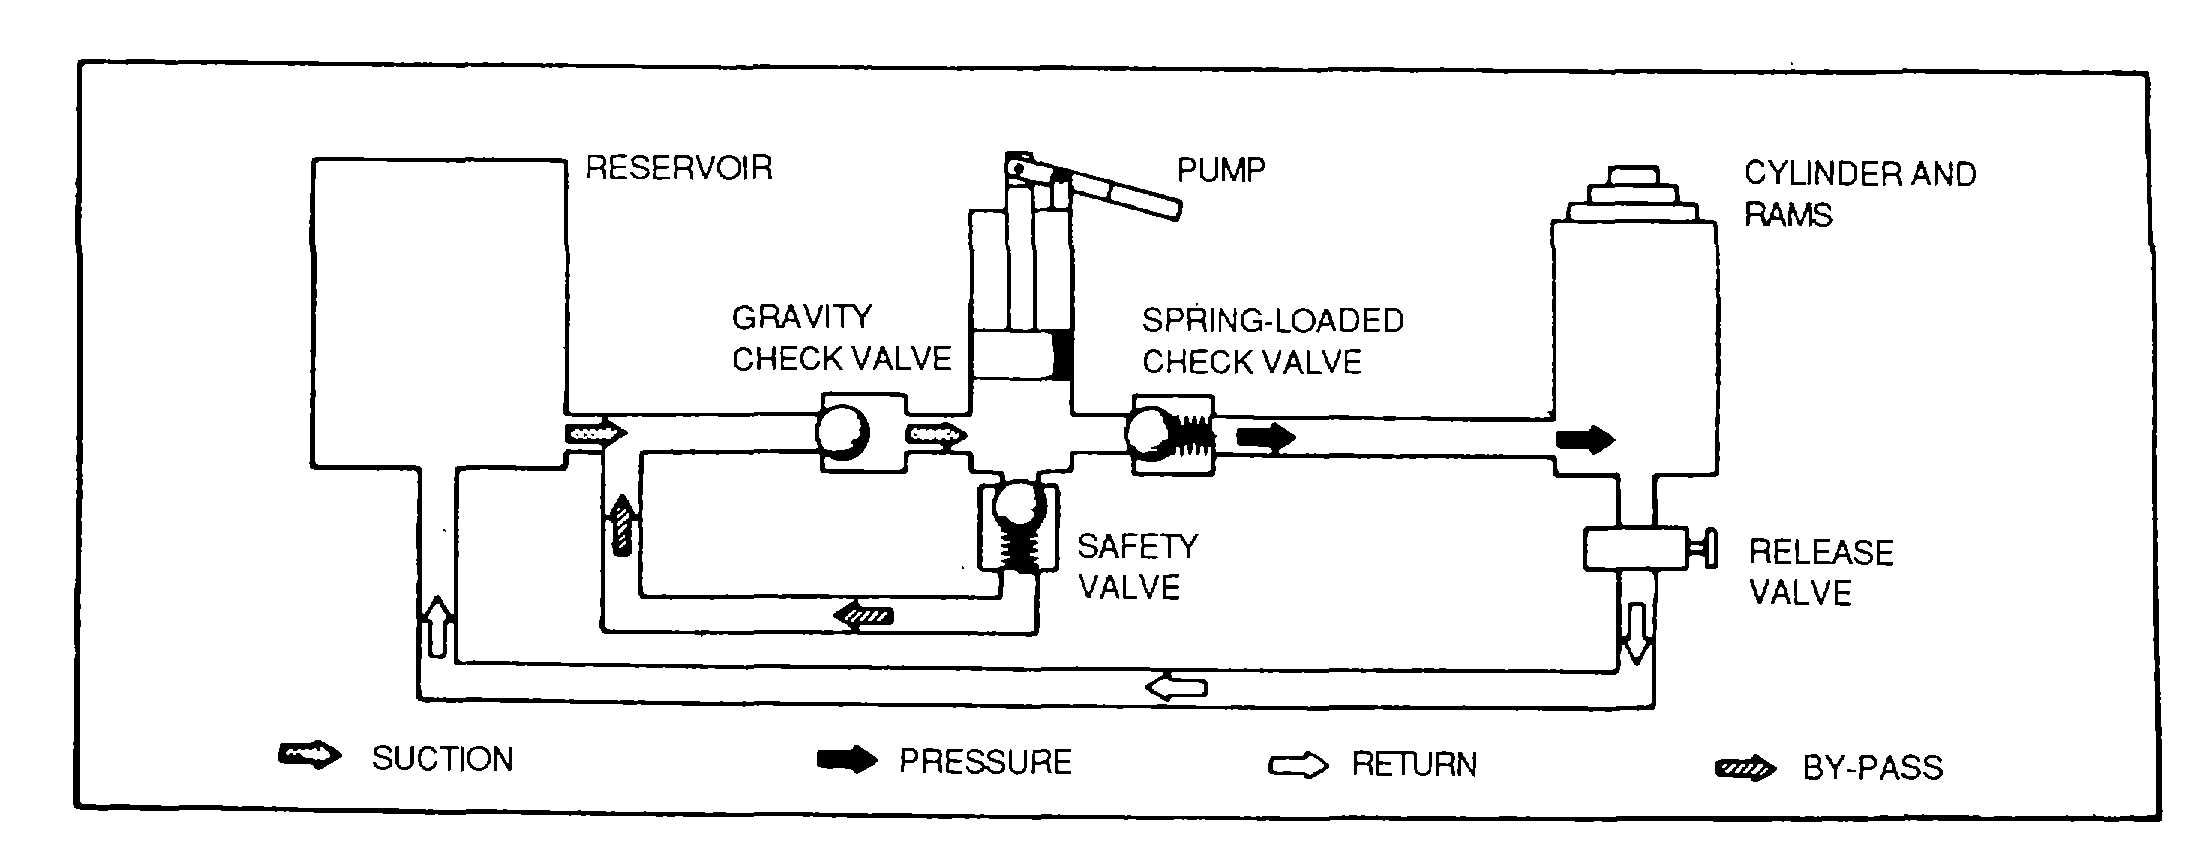 ground support equipment cont tm 1 1500 204 23 9 185 rh aviationmiscmanuals tpub com hydraulic jack diagram pdf hydraulic jack diagram pdf